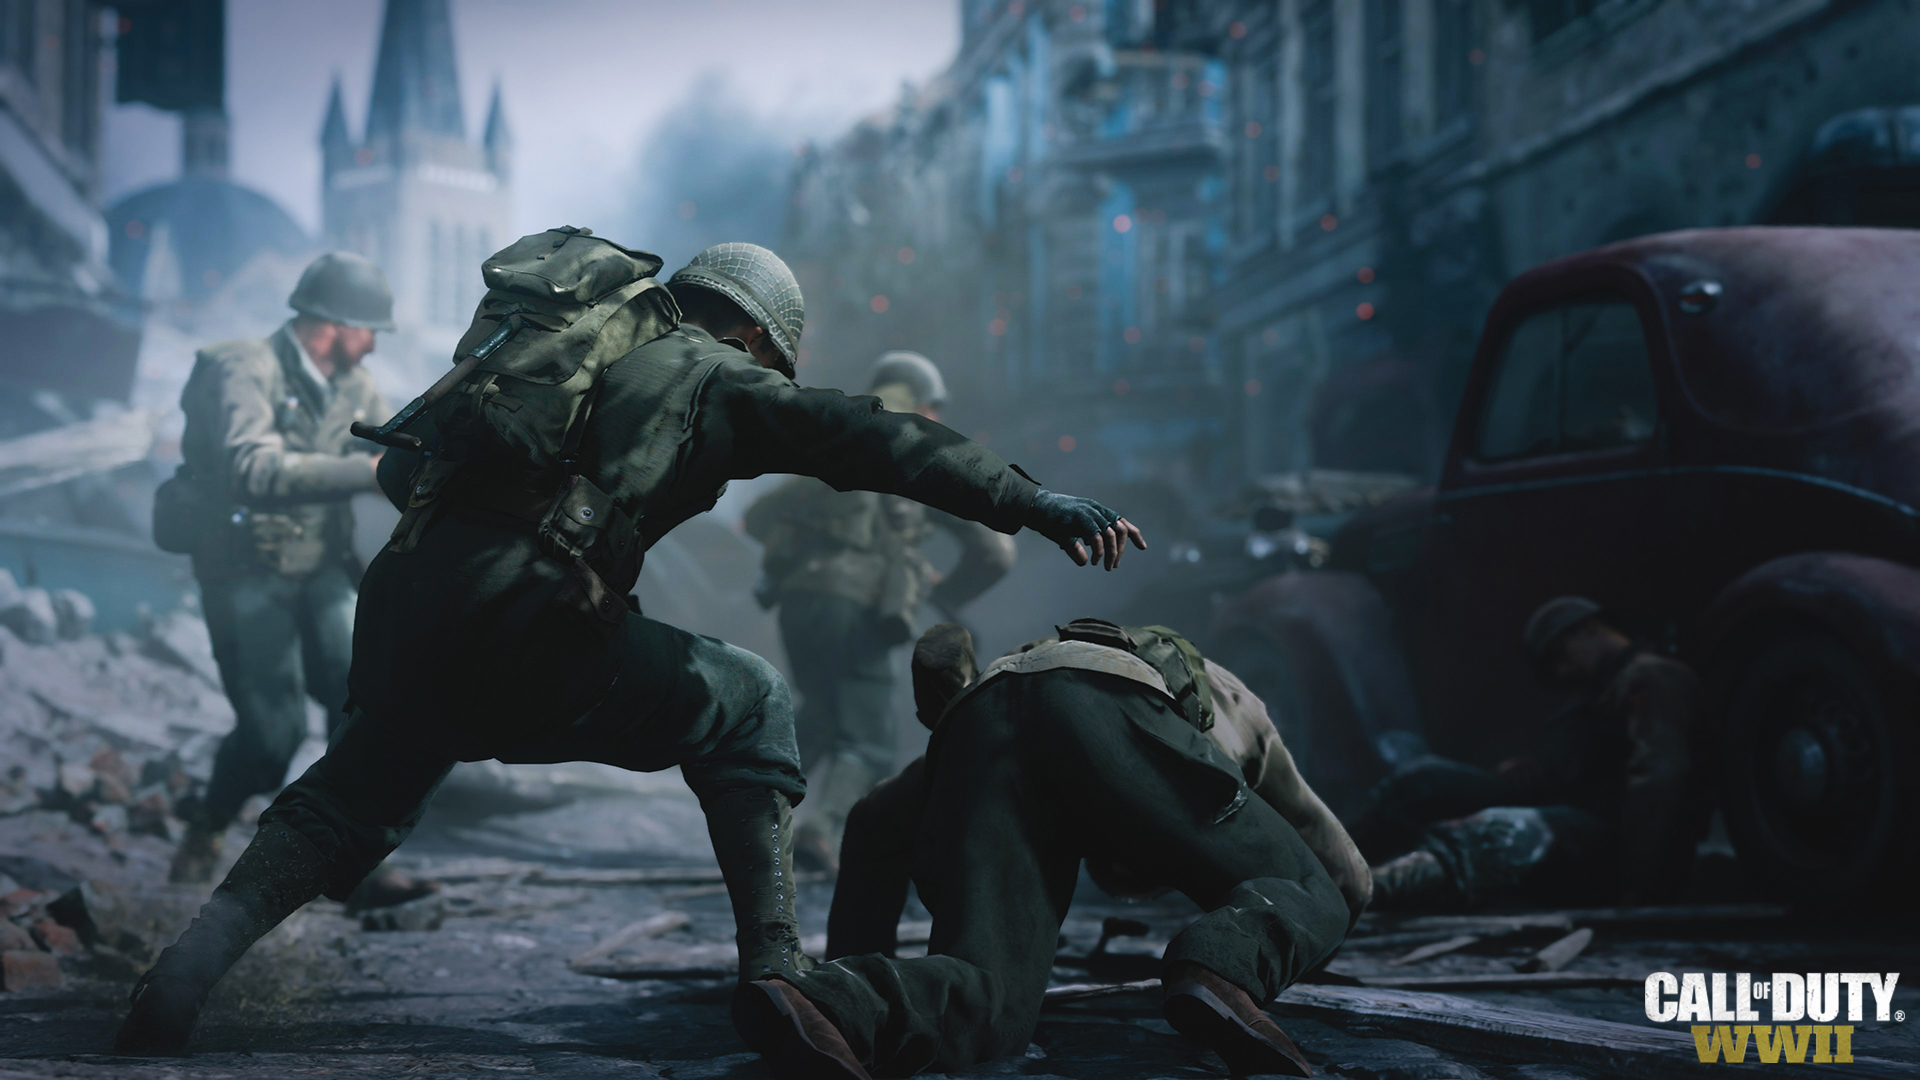 conoce-documental-oficial-call-of-duty-wwii-brotherhood-of-heroes-frikigamers.com